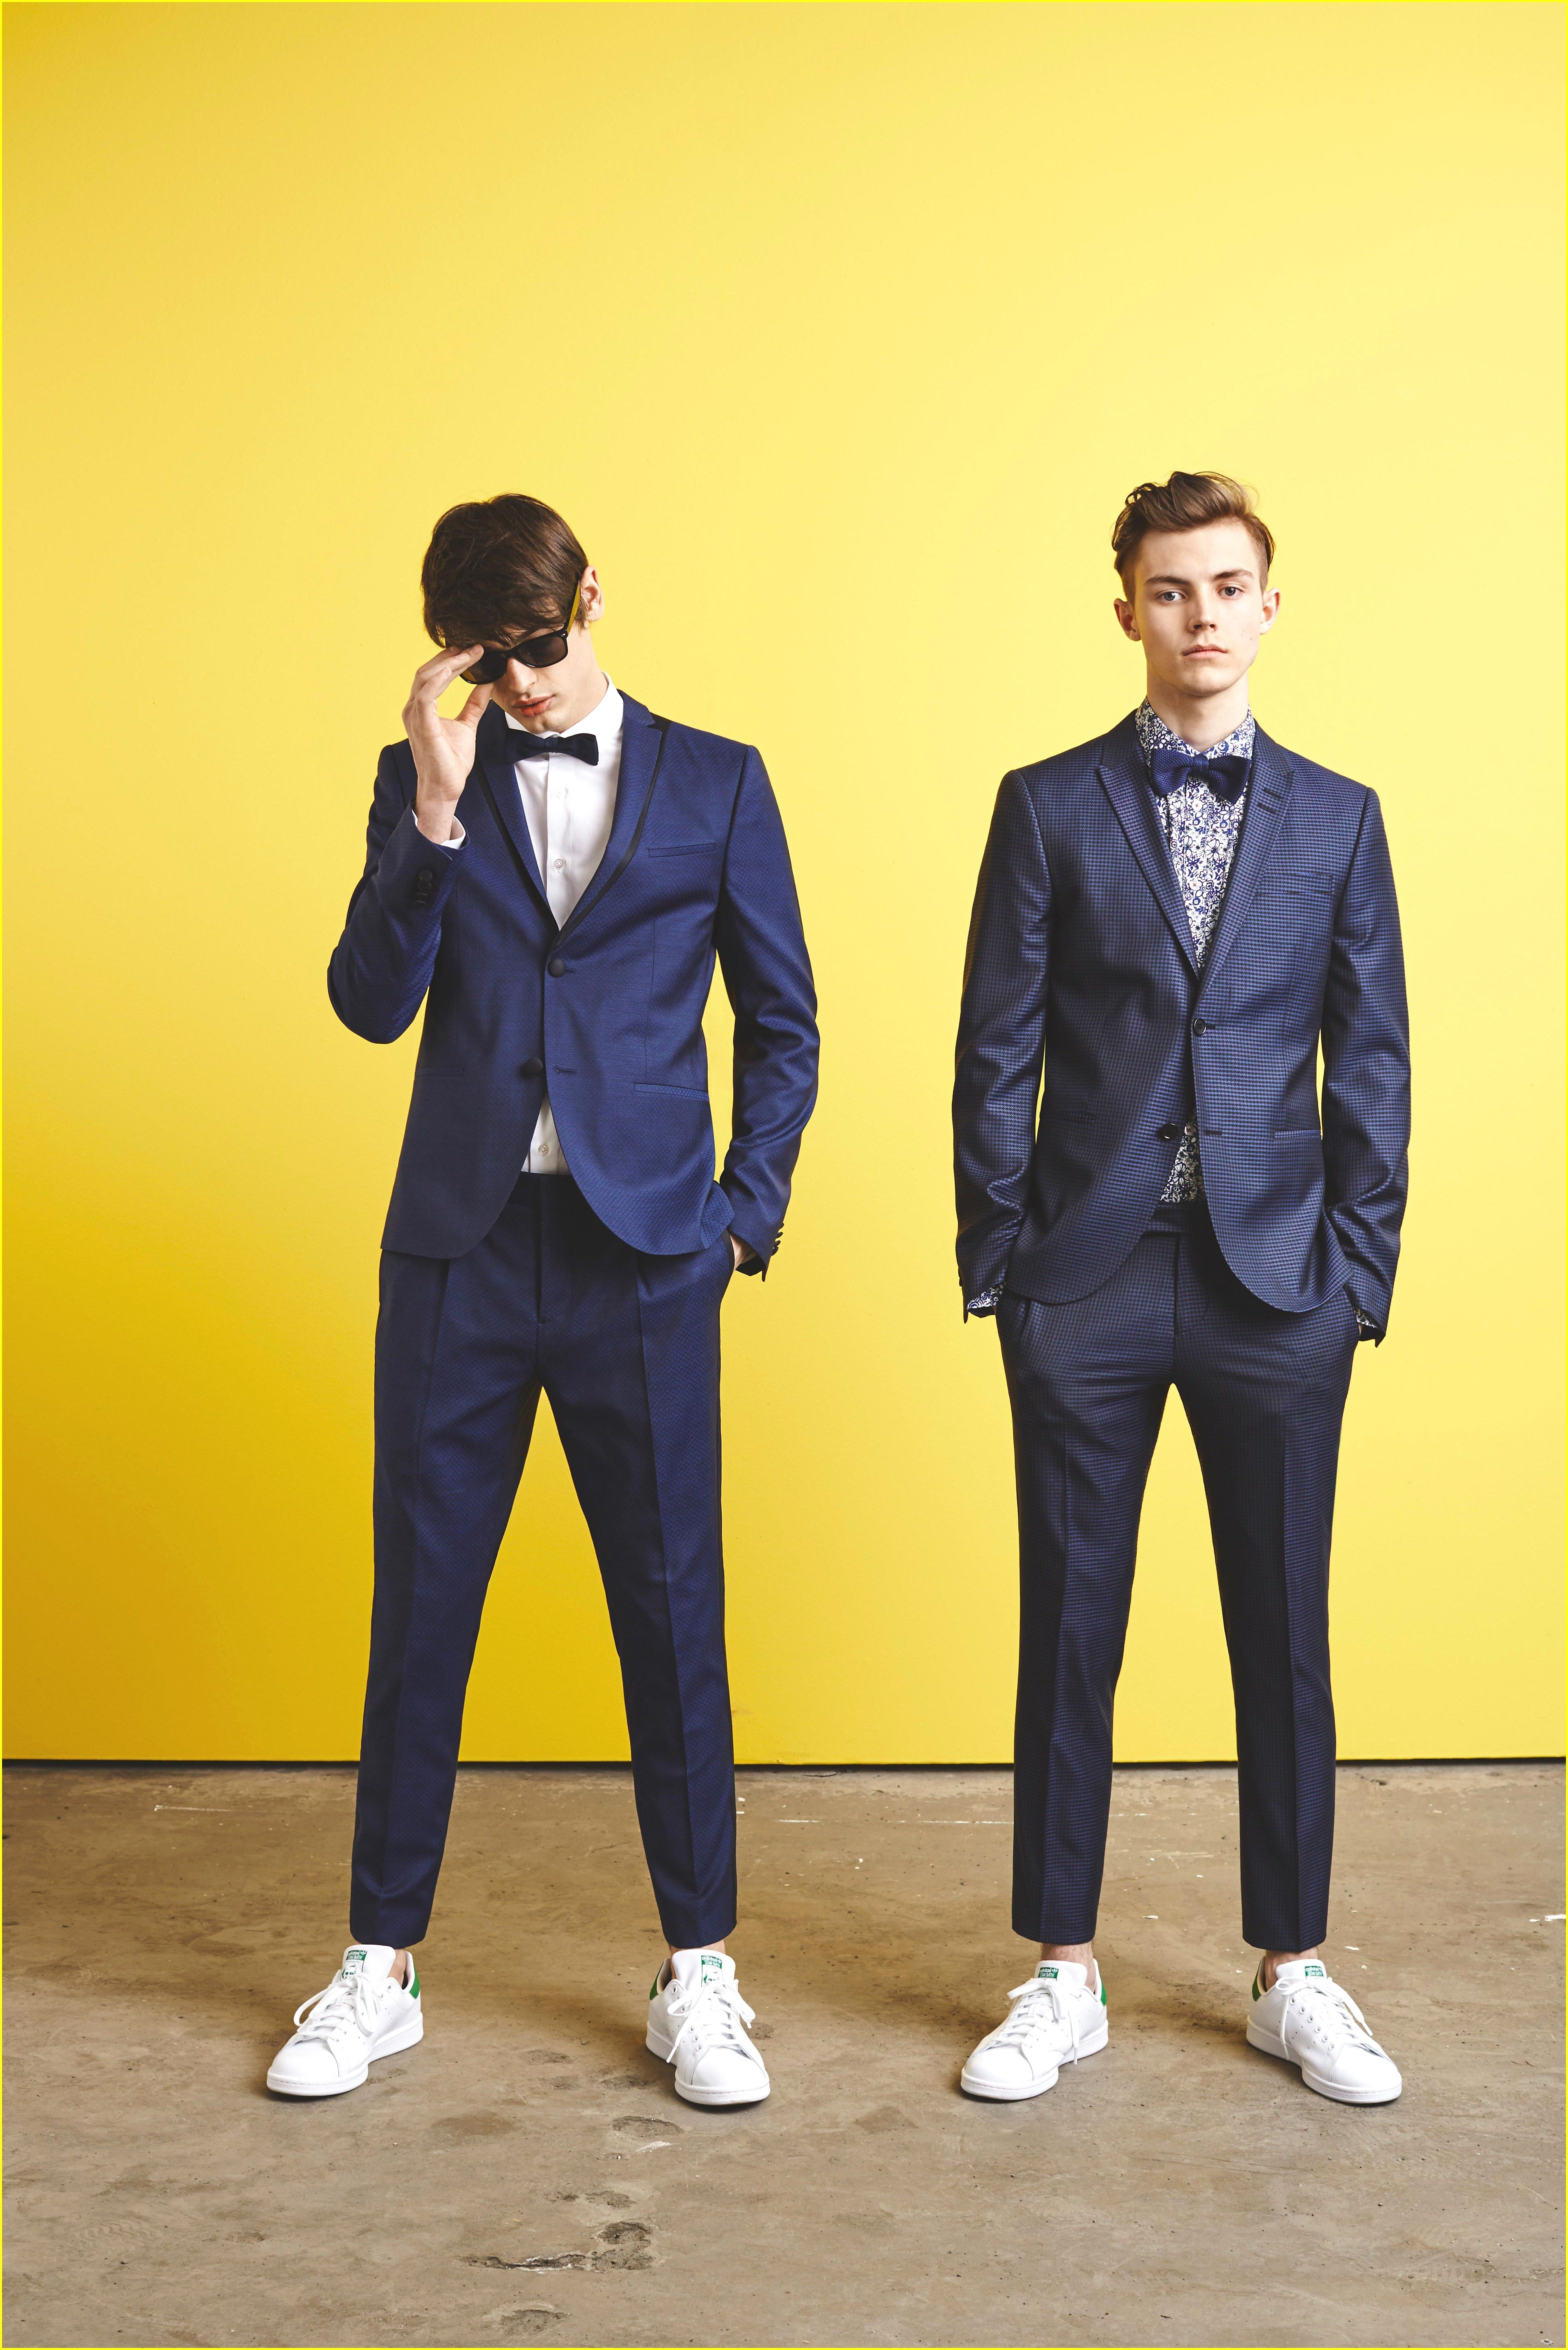 Choosing A New Pair Of Sneakers Do You Want More Information On Sneakers Then Simply Just Click Here To Ge Suits And Sneakers Guys Prom Outfit Suits For Guys